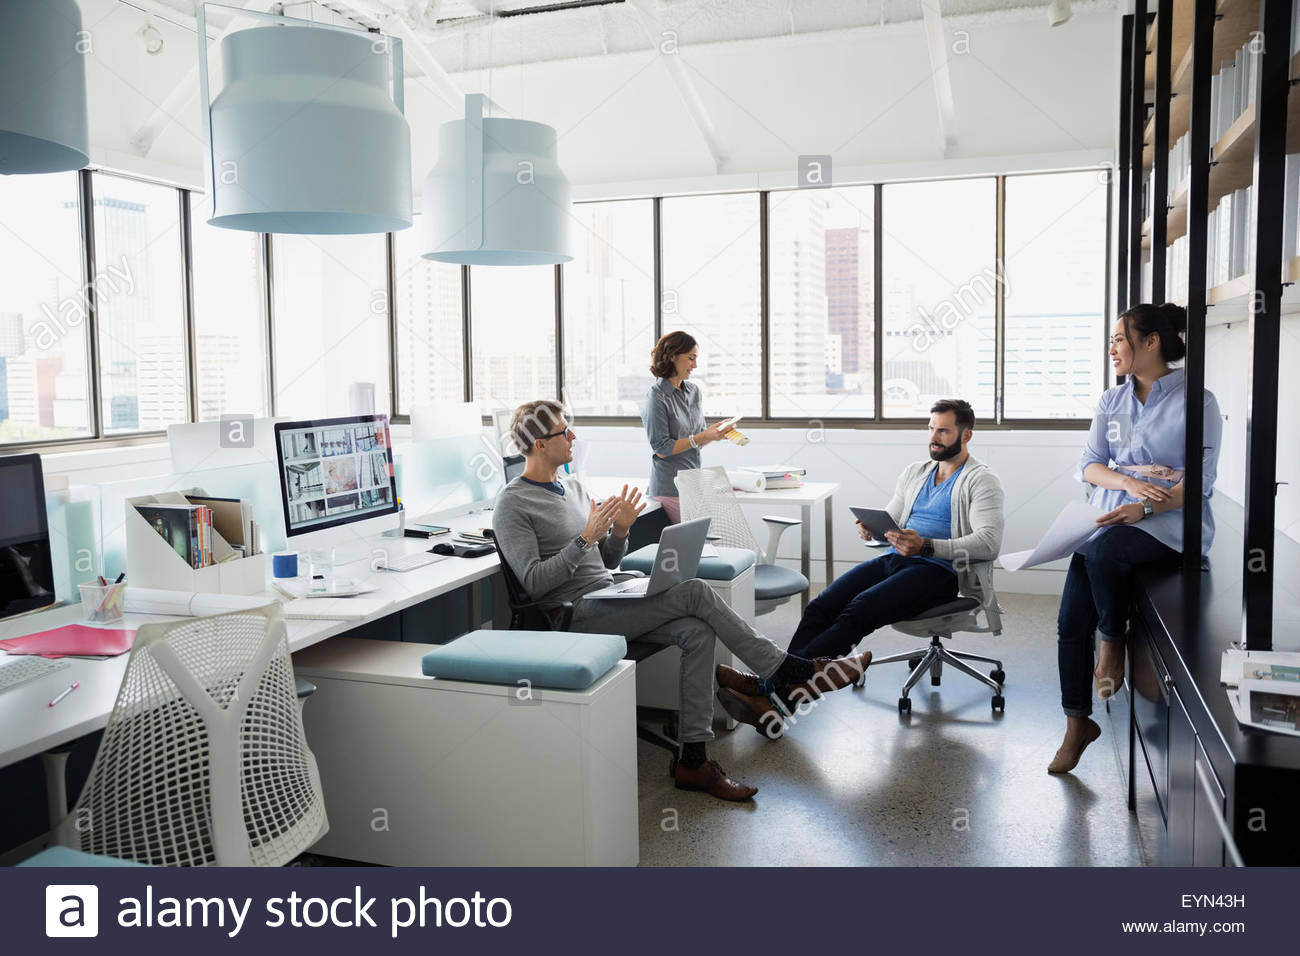 Architects meting in office - Stock Image